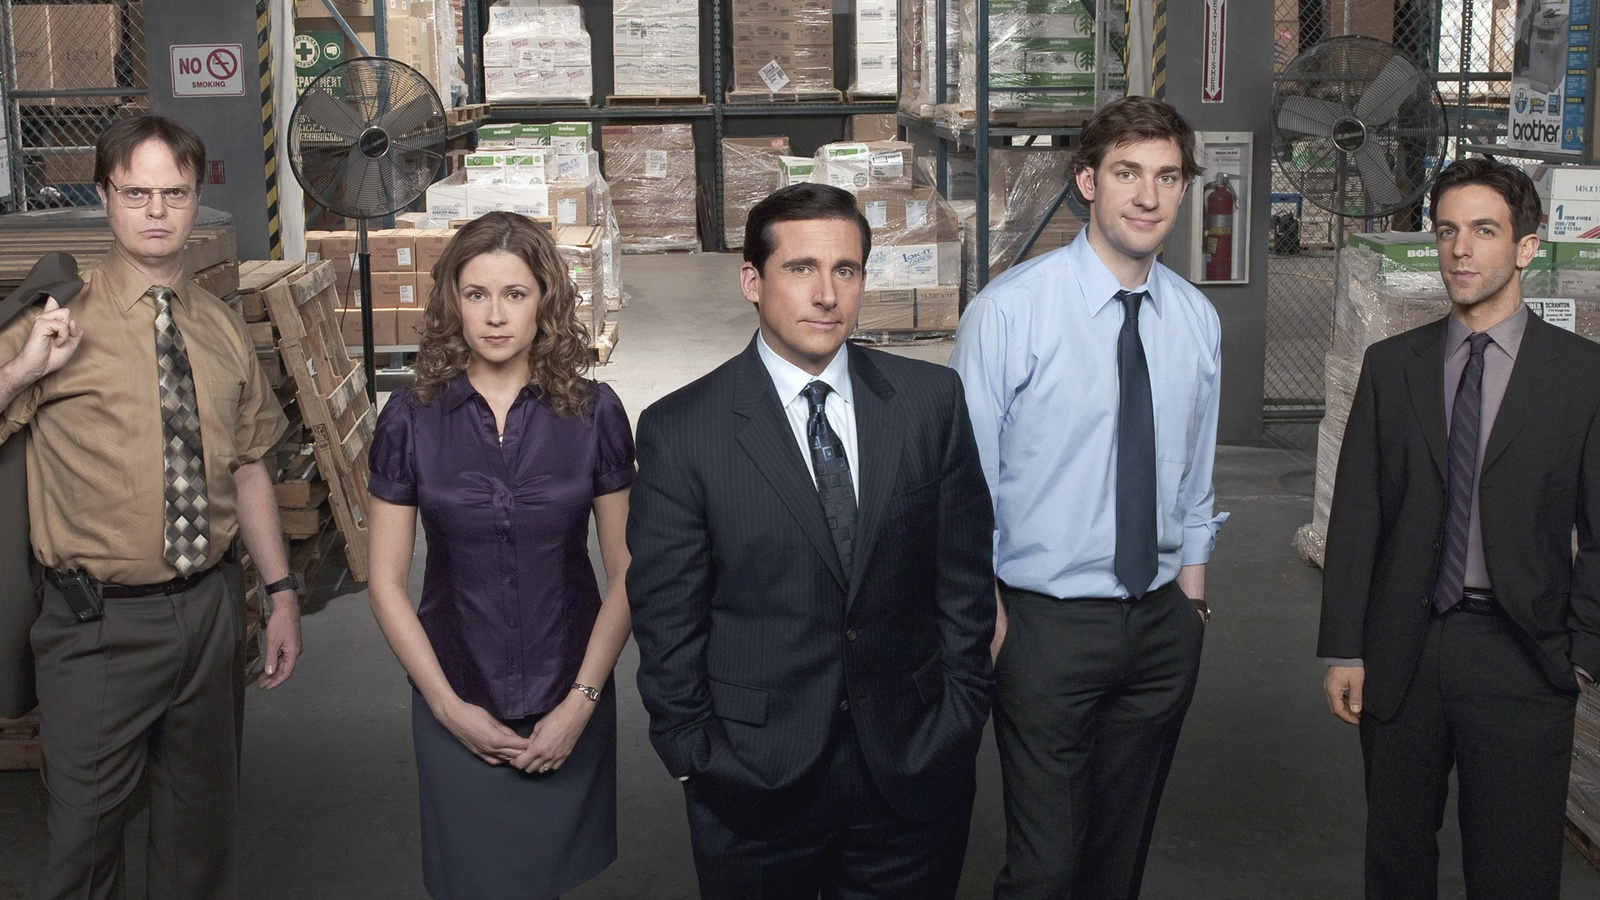 Офис (US)/The Office background